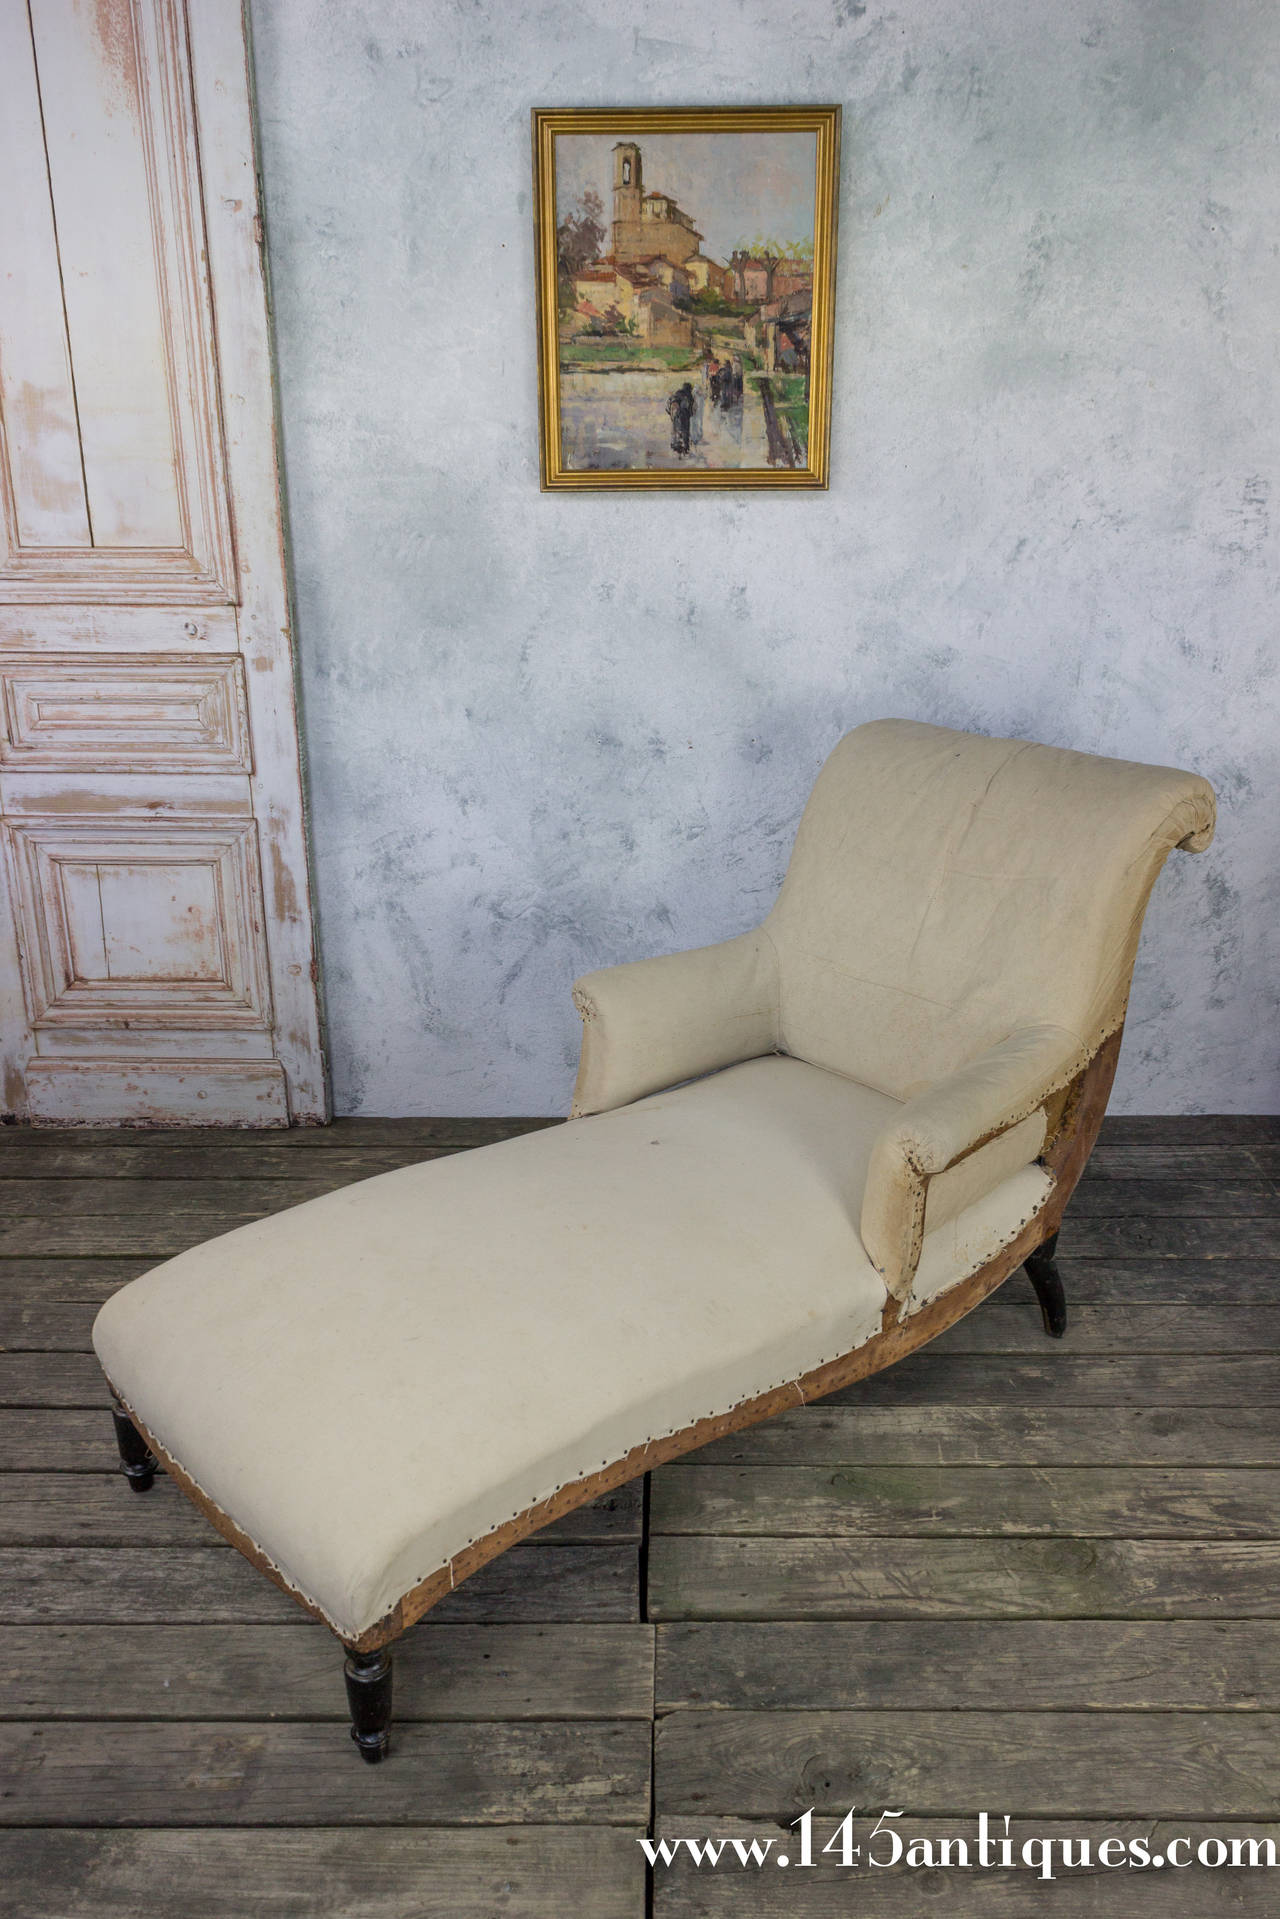 French 19th Century Scrolled Back Chaise Longue In Muslin